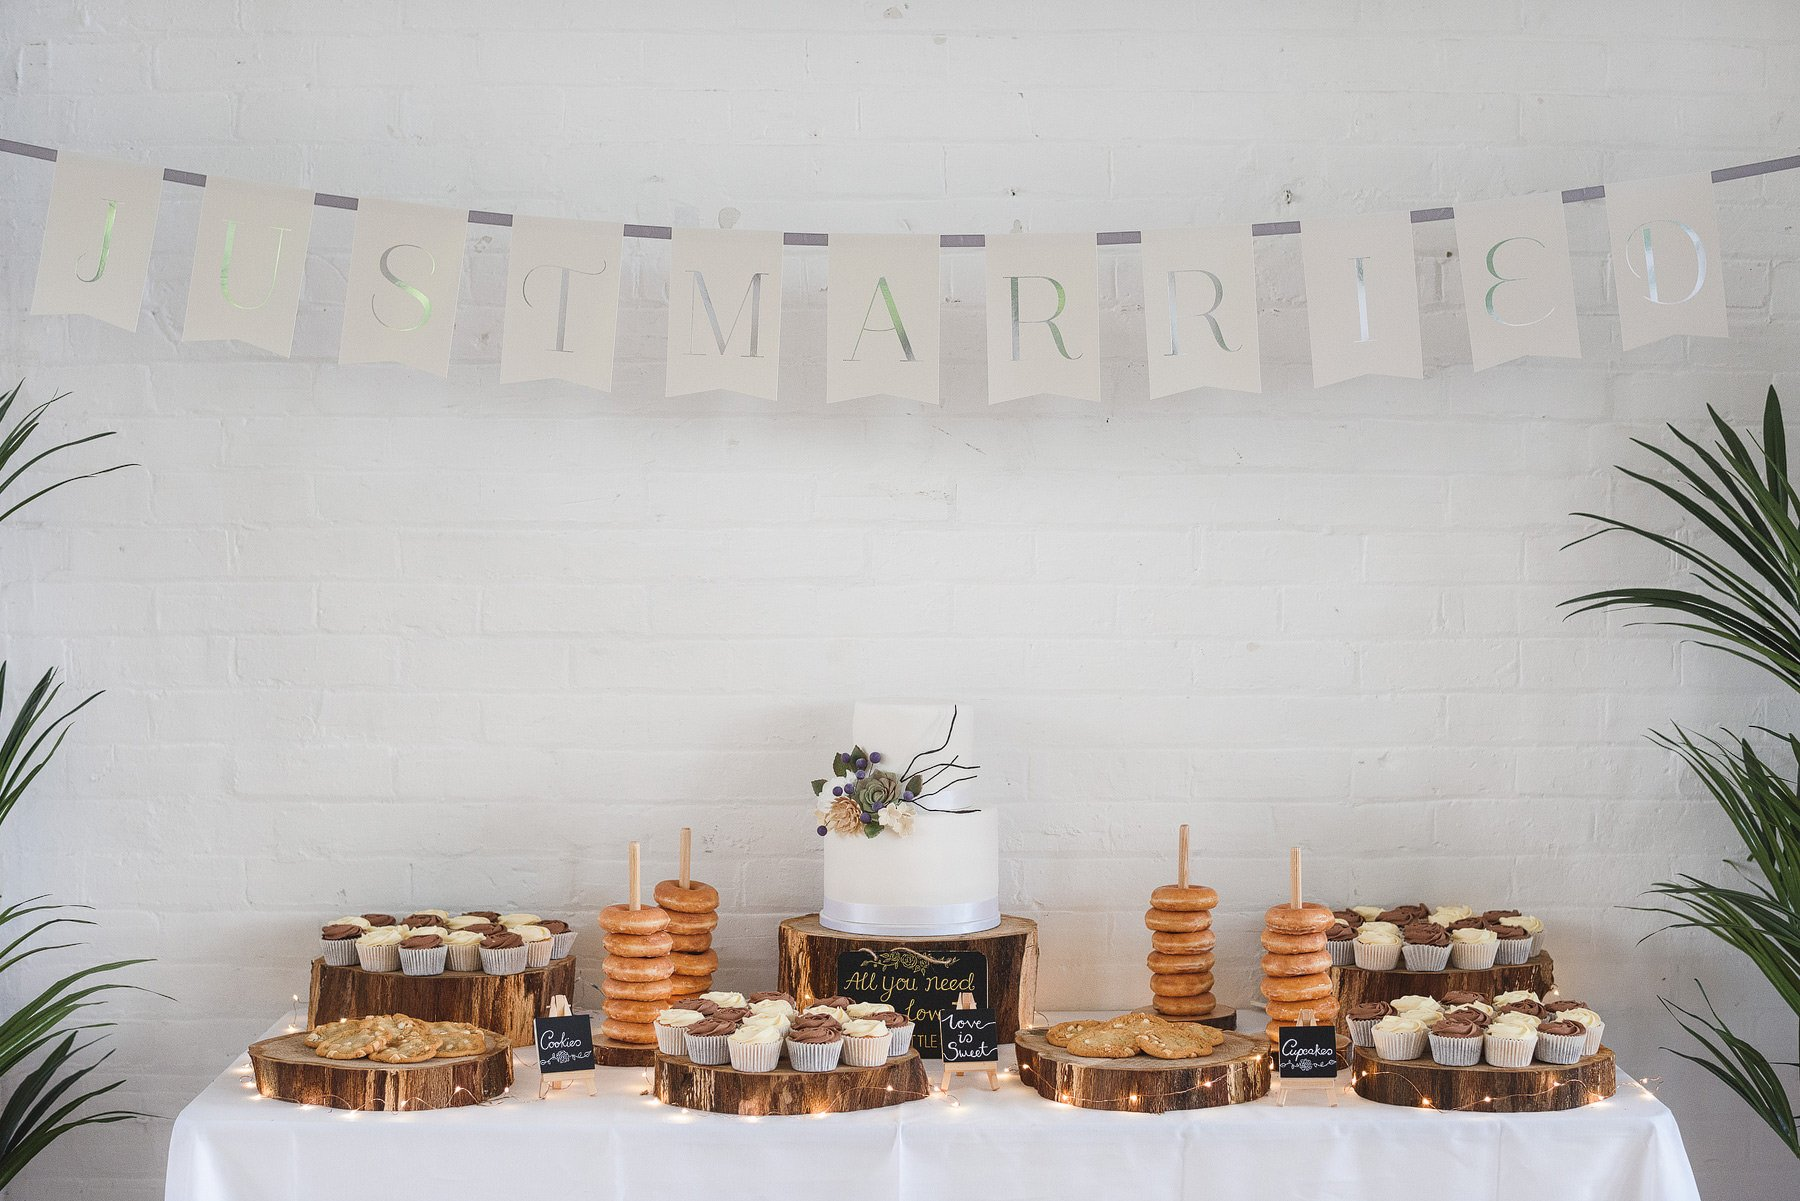 amazing cake table at a wedding